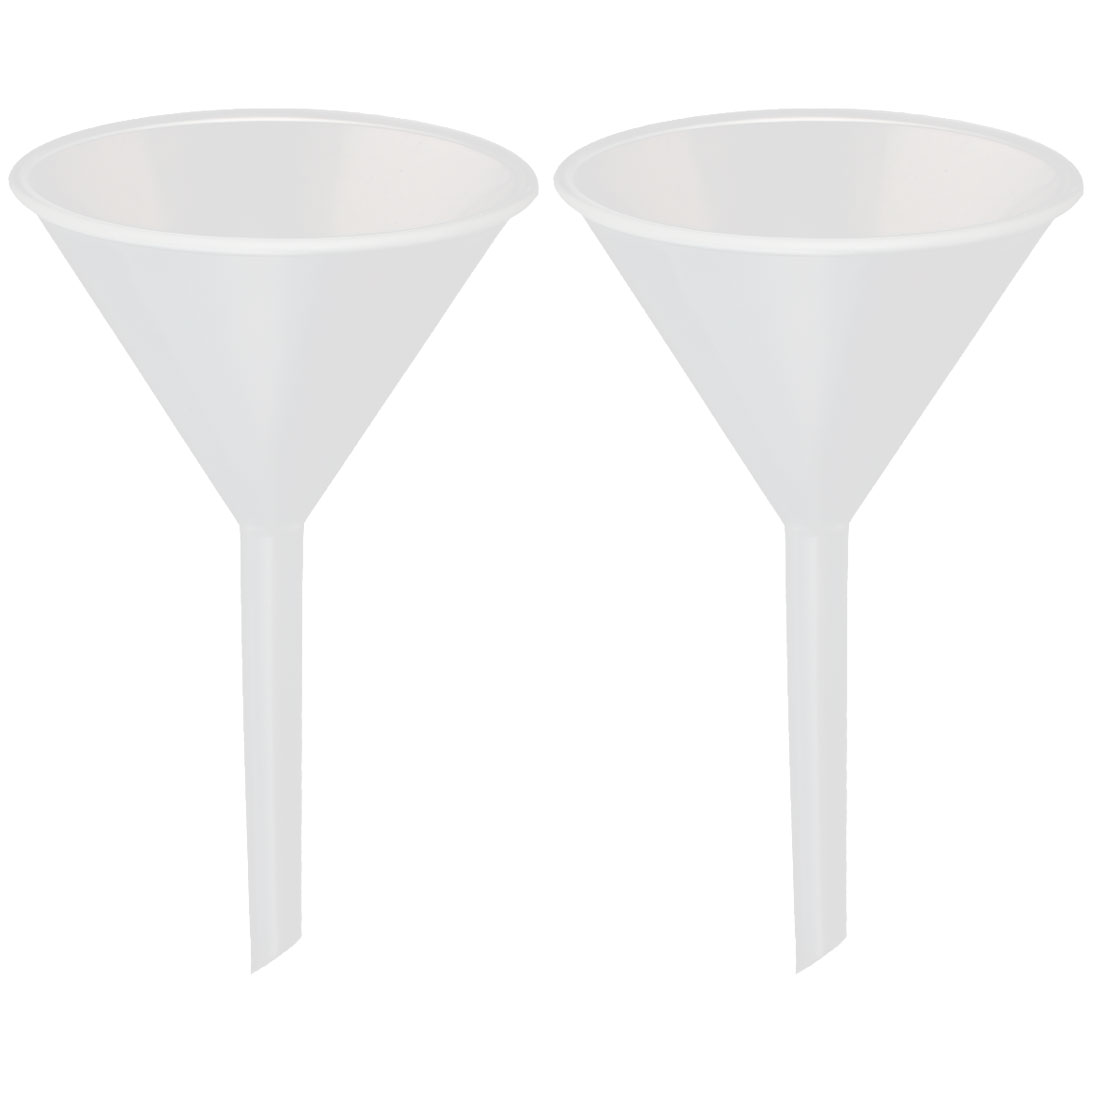 2pcs 55mm Mouth Dia Household Lab Water Oil Plastic Funnel Transfer Filling Tool